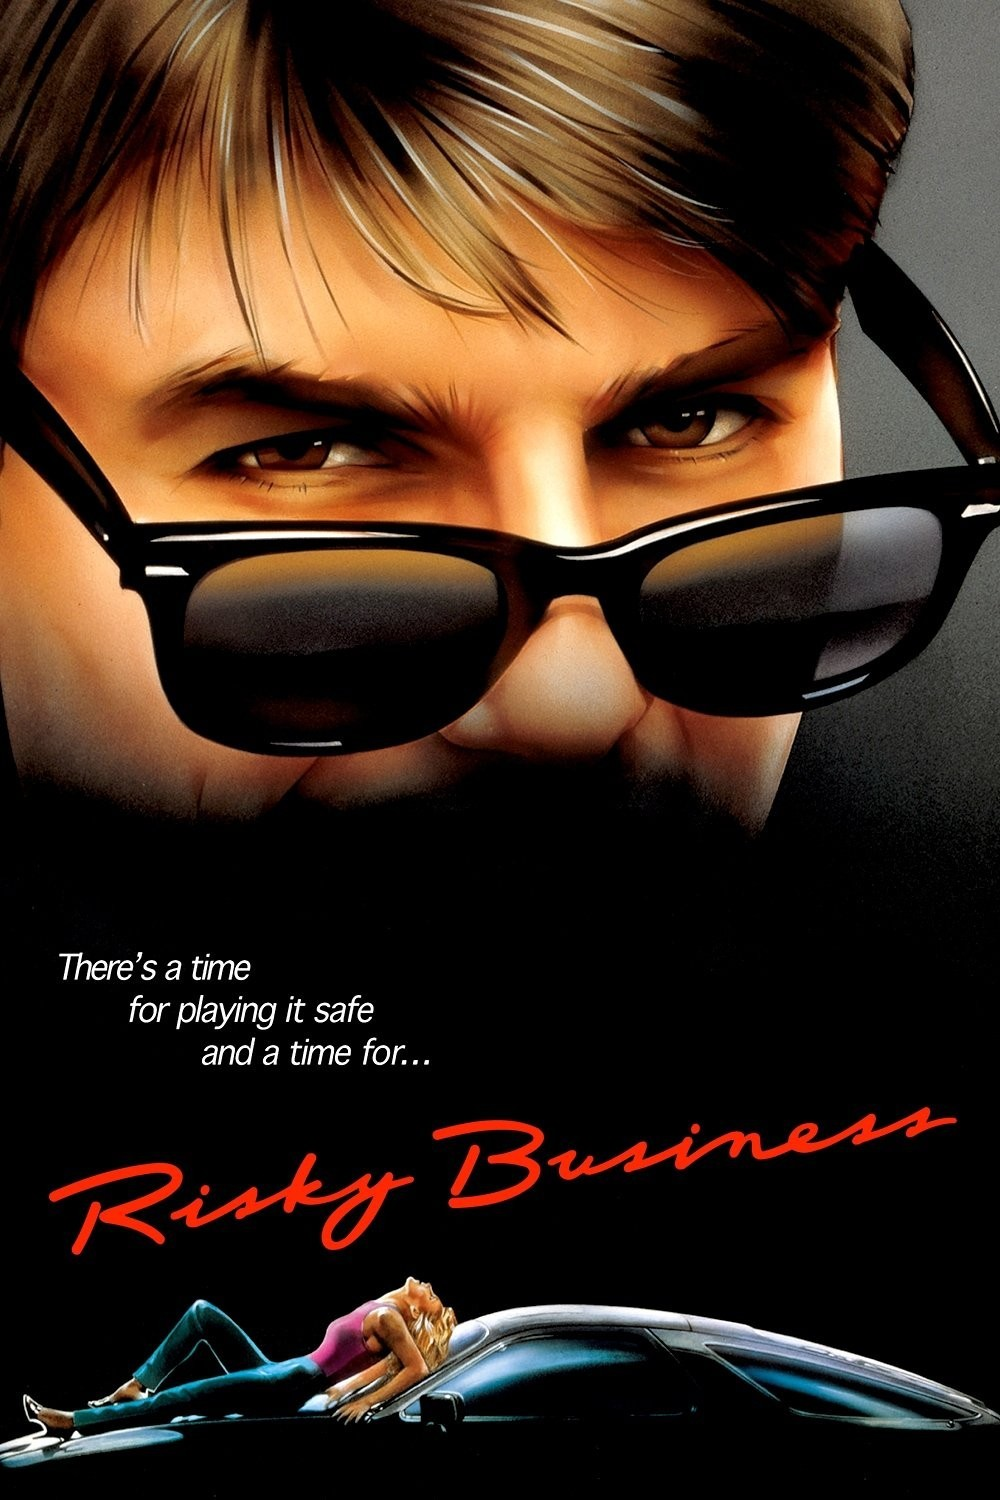 Risky Business 1983 720p BluRay x264-x0r